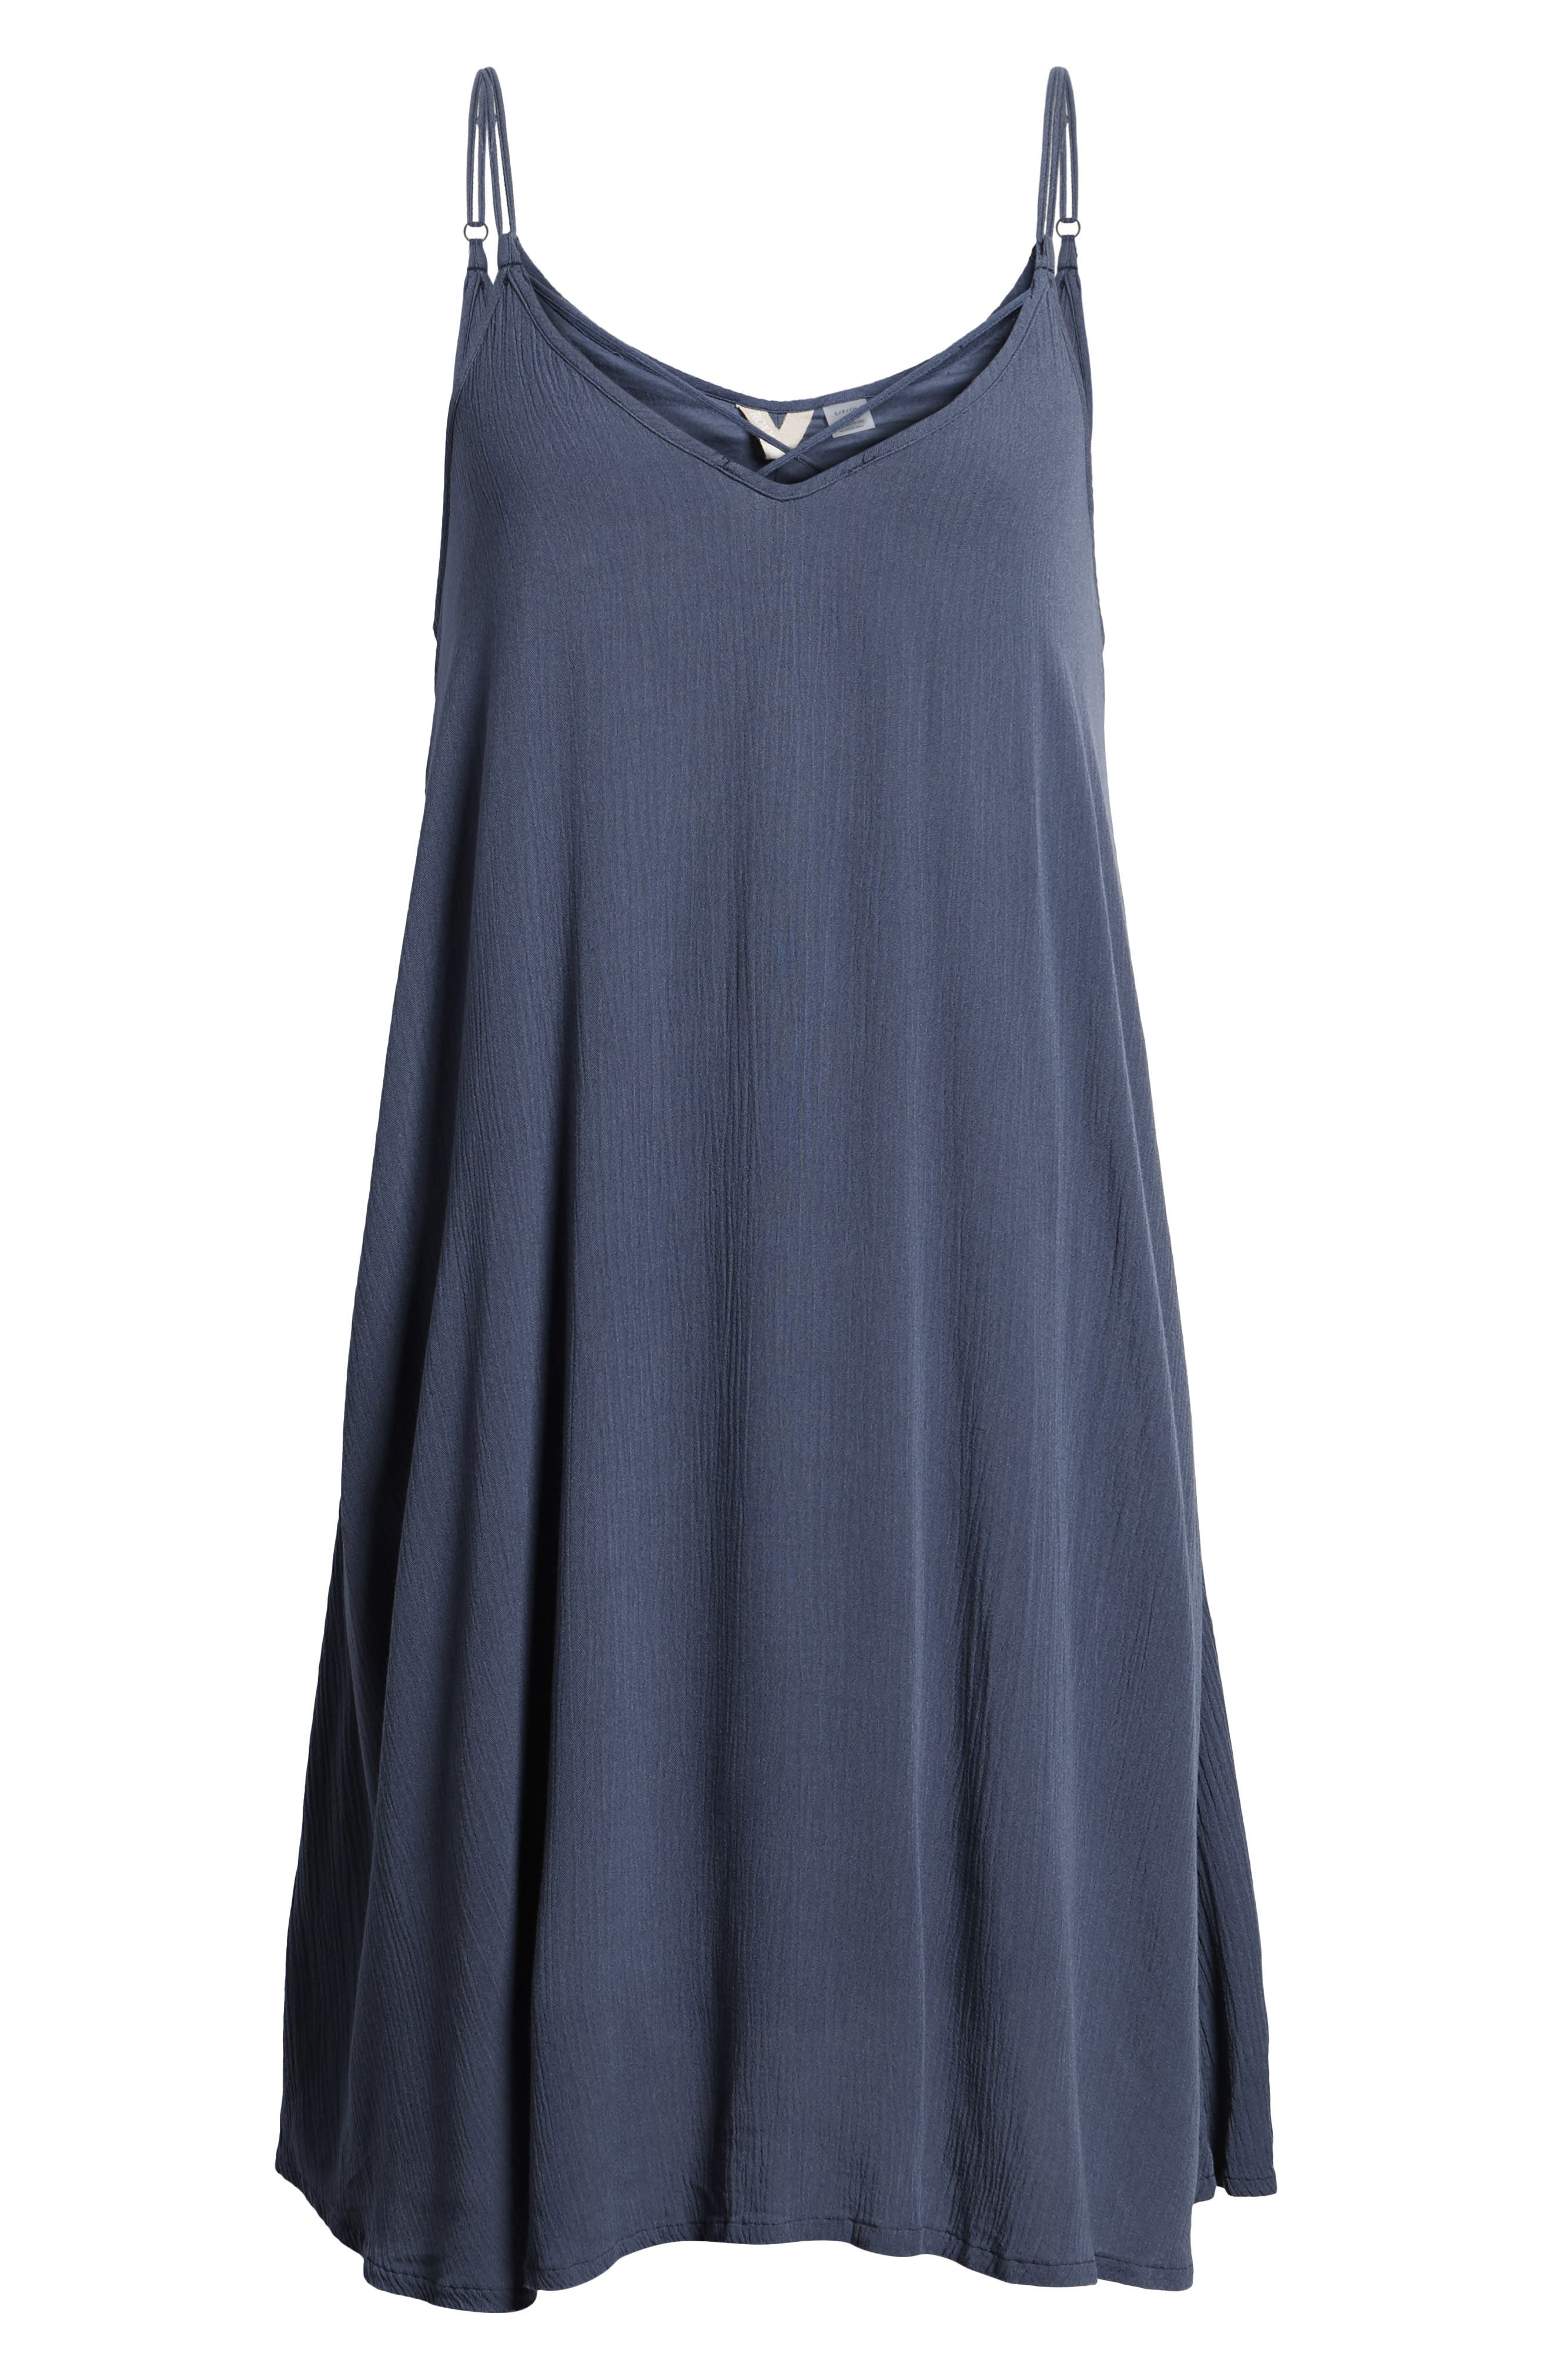 Half Year Old Trapeze Dress,                             Alternate thumbnail 14, color,